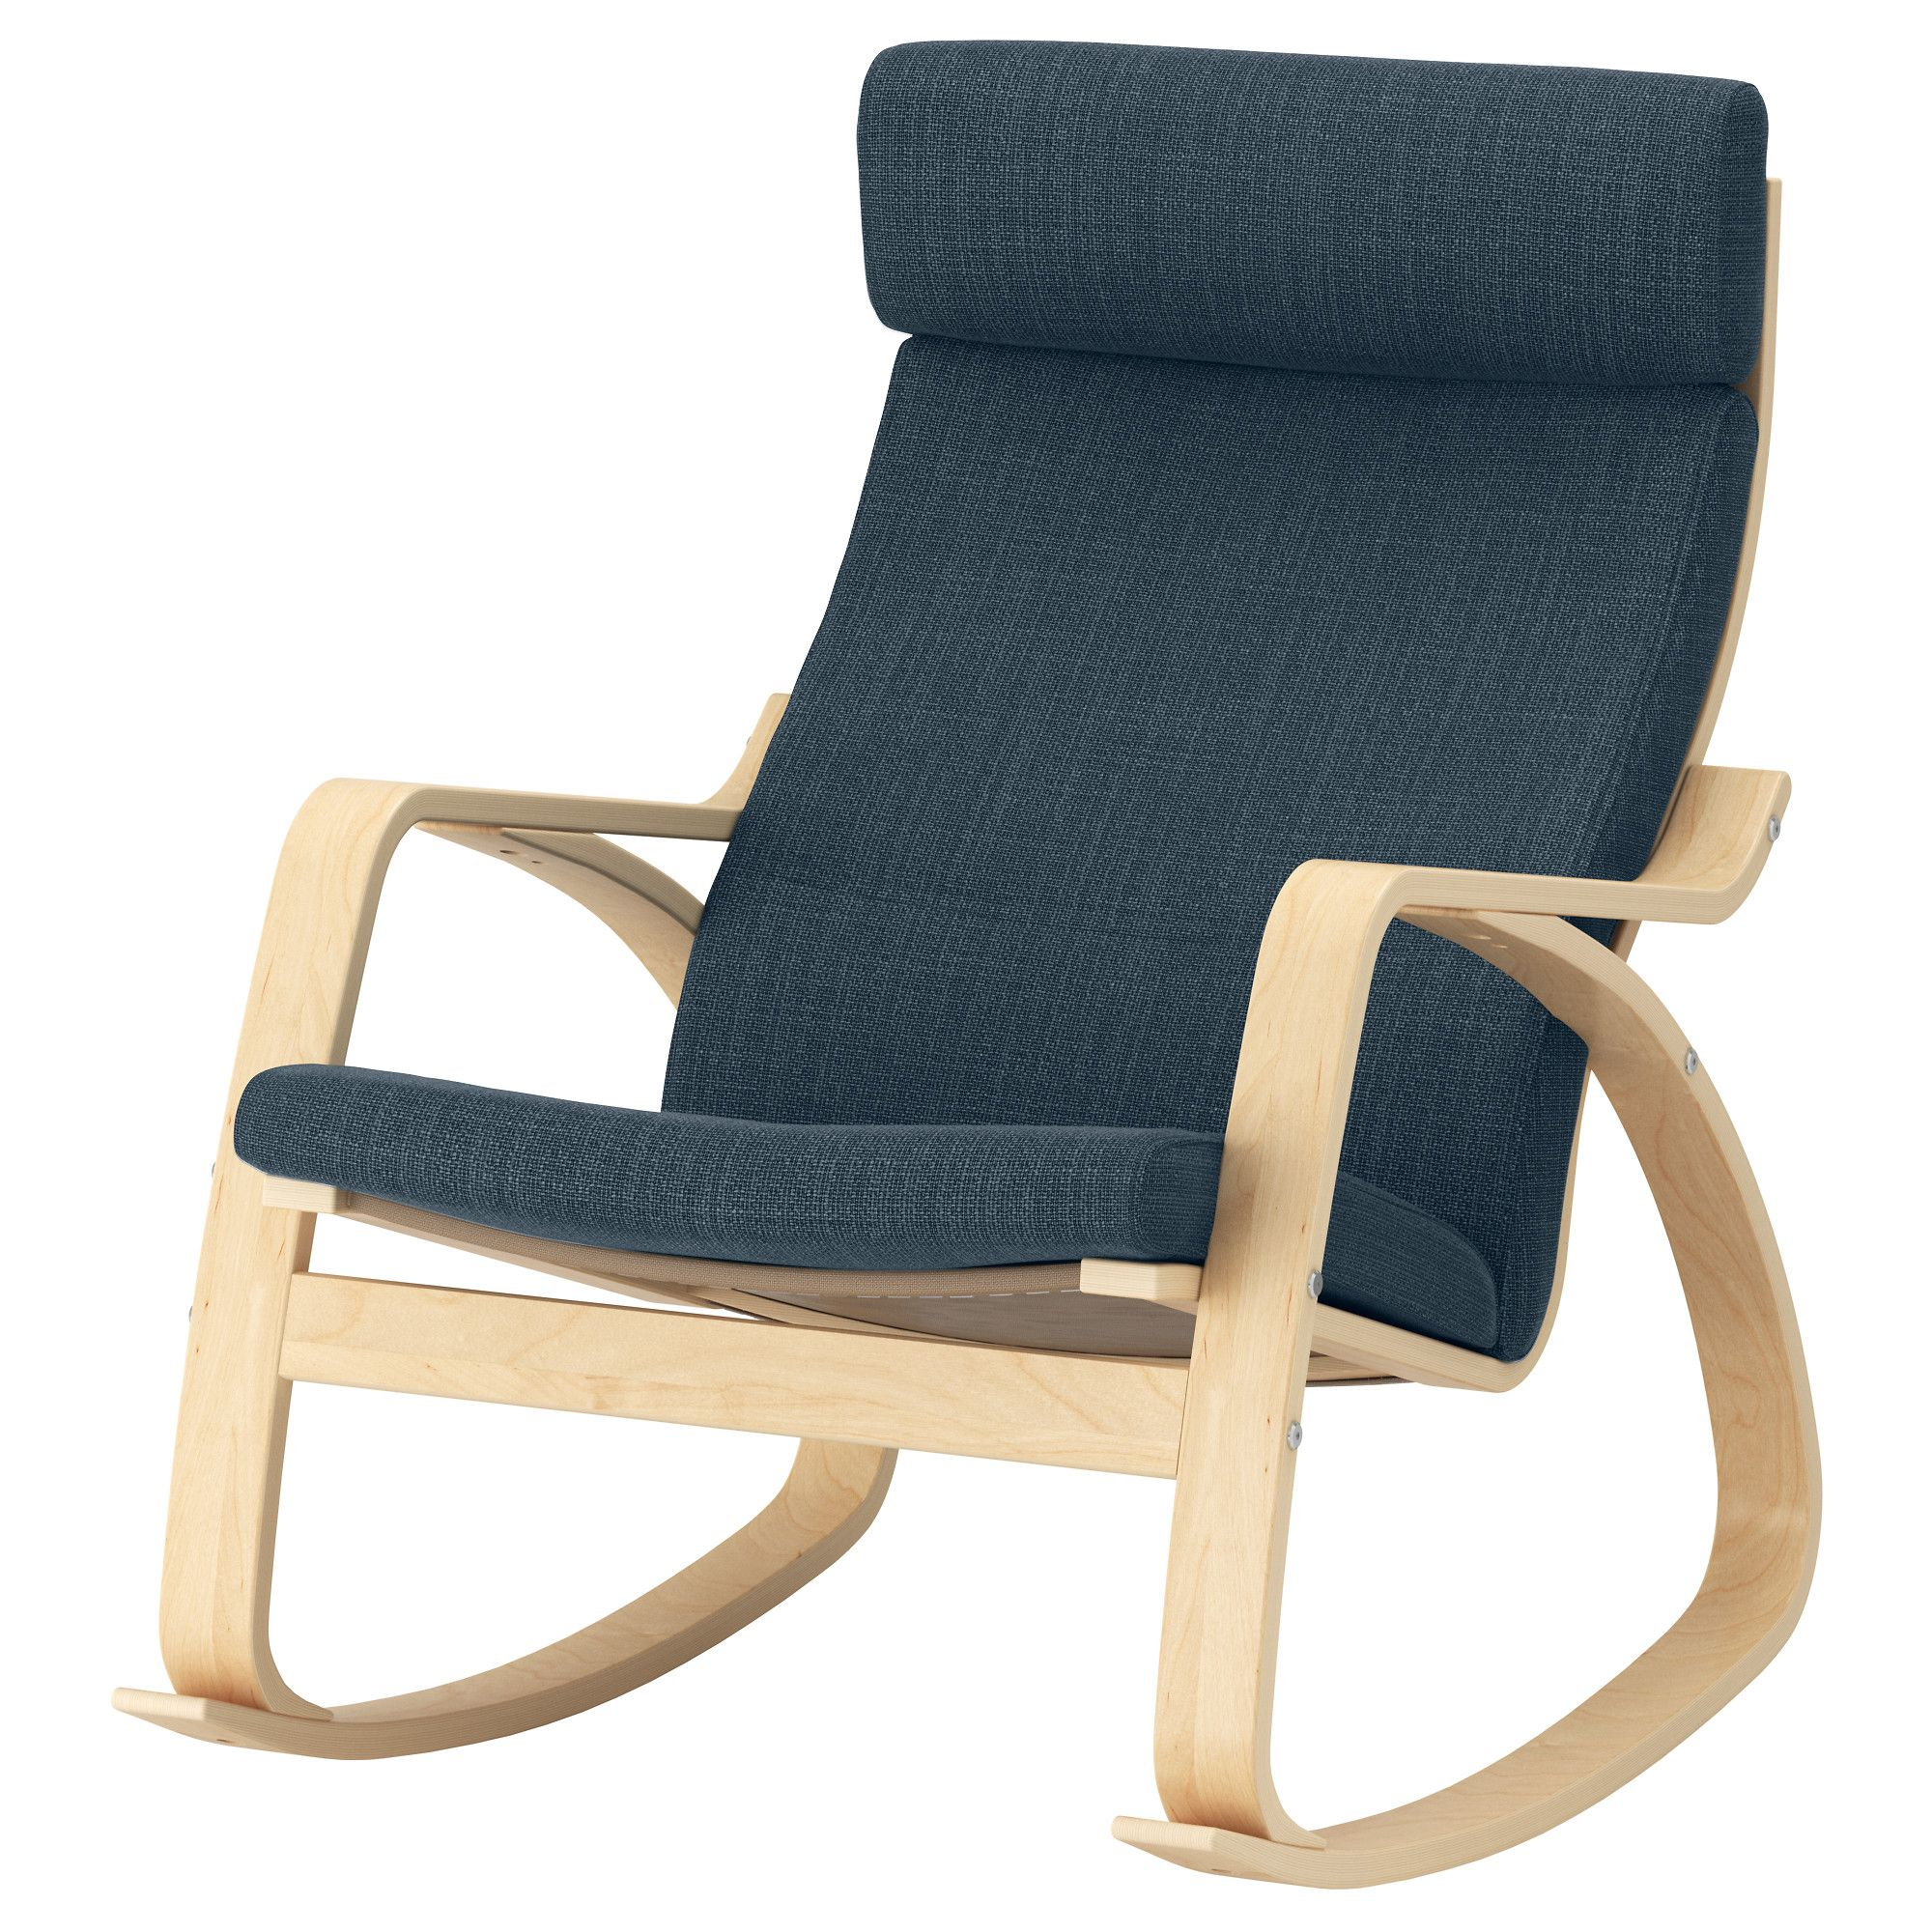 POÄNG Rocking chair birch veneer, Hillared dark blue